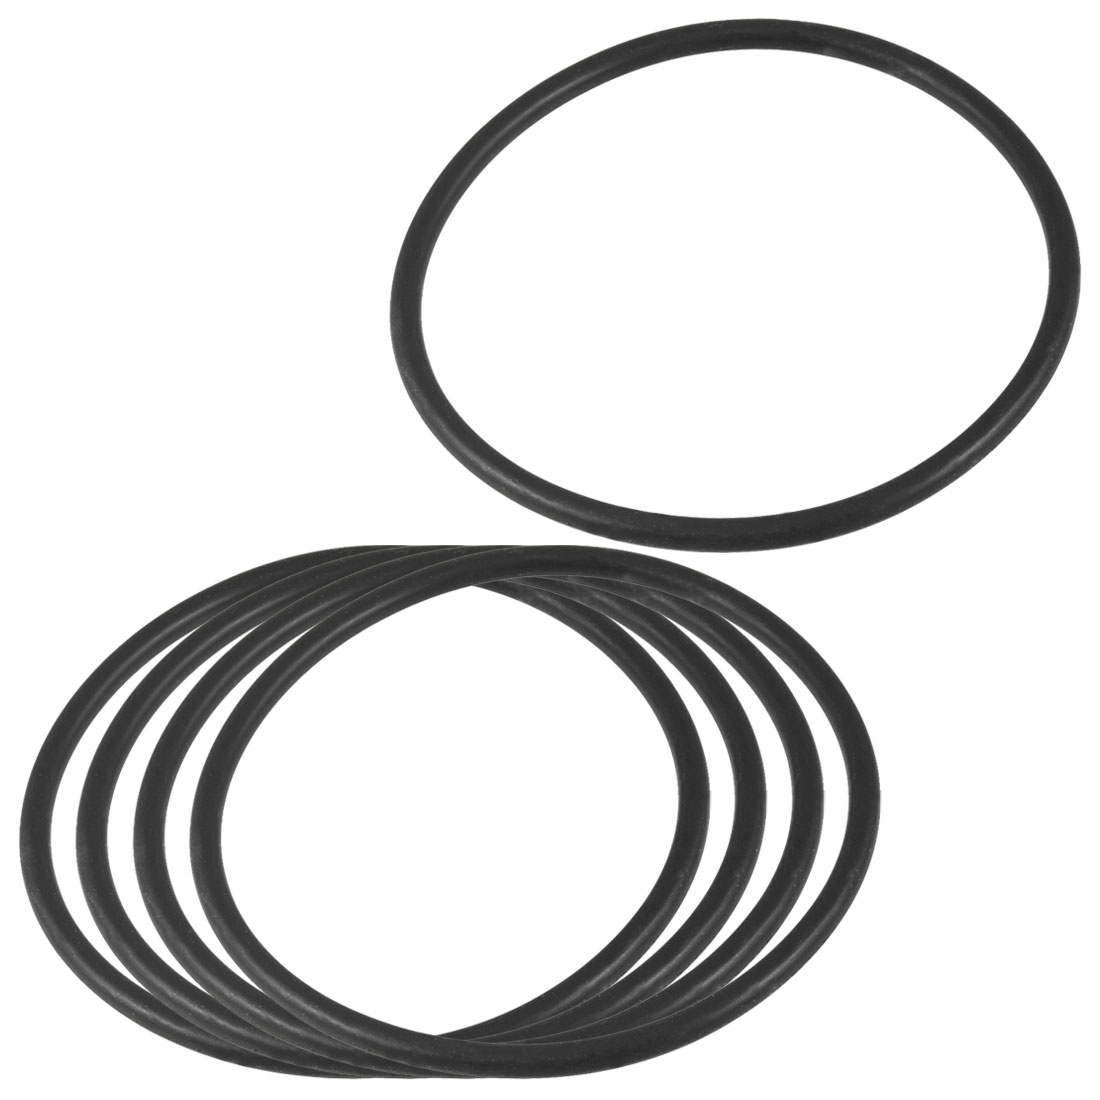 5 Pcs Nitrile Rubber O Ring Oil Sealing Gasket Black 85mm x 4mm